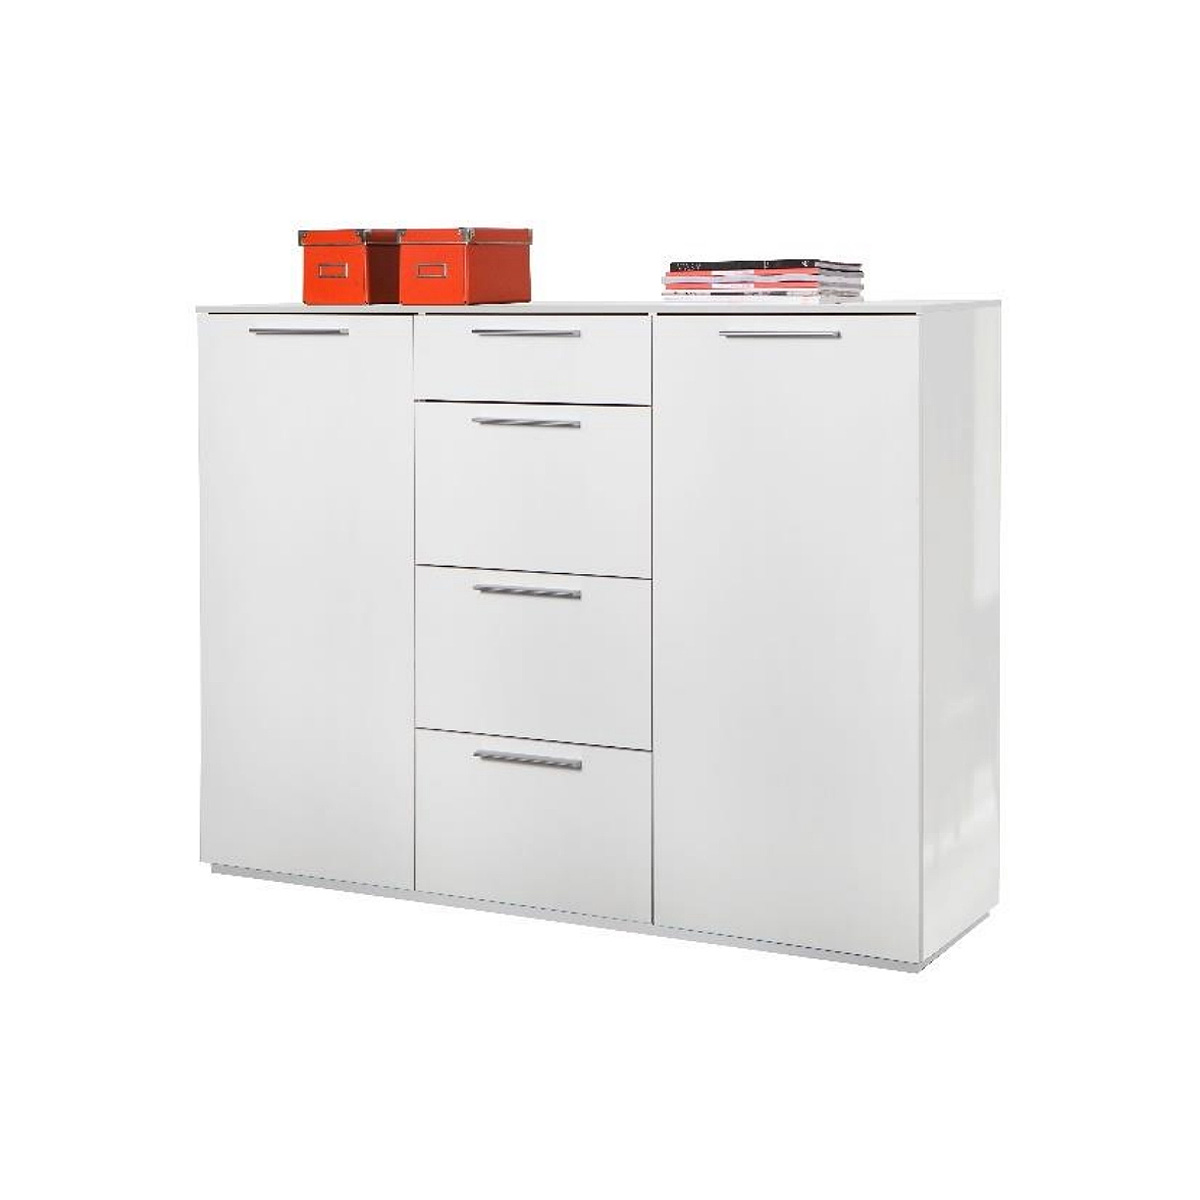 sideboard semplice anrichte kommode schrank in wei hochglanz lack ebay. Black Bedroom Furniture Sets. Home Design Ideas